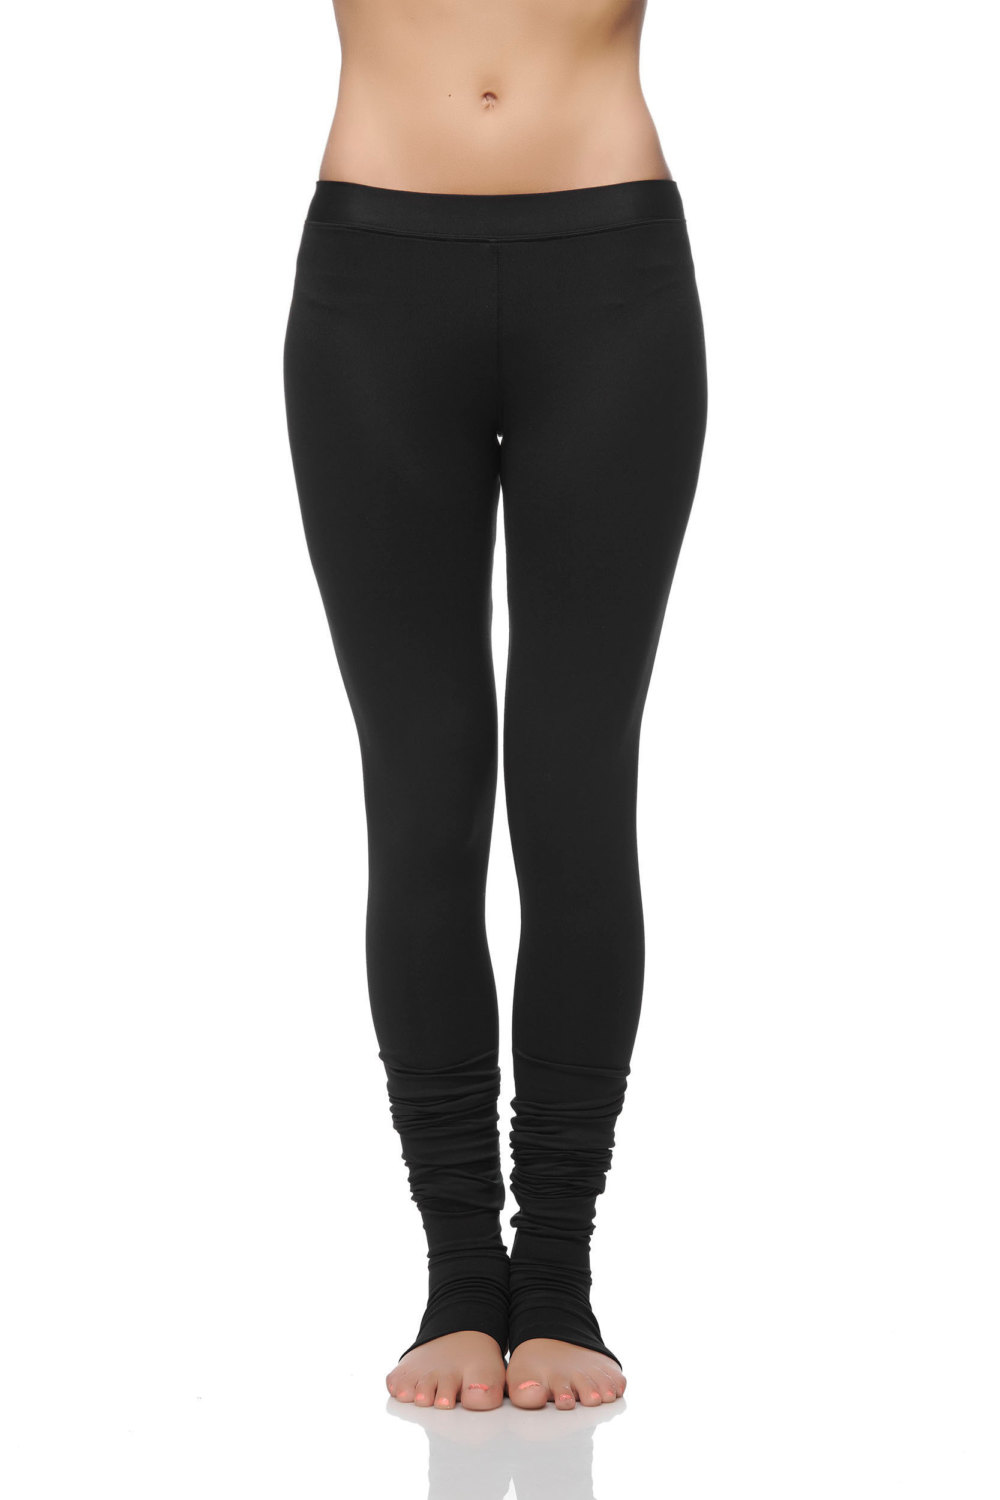 0e940d2a4 ... Extra Long Yoga Leggings - Special Leggings with Spats - Women  39 s  Yoga ...